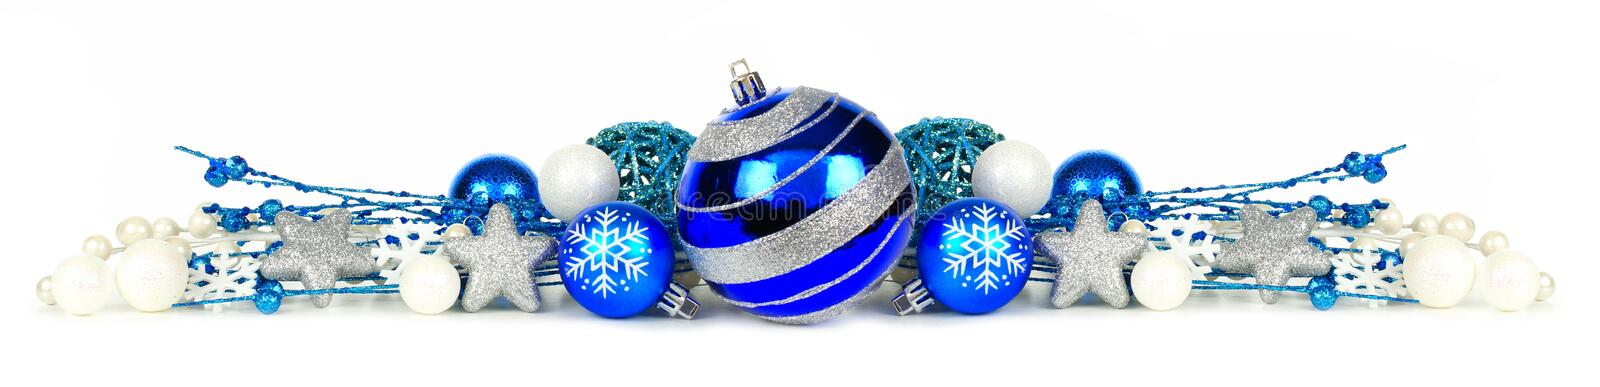 Blue And Silver Christmas Ornament Border Over White Stock Photo ...